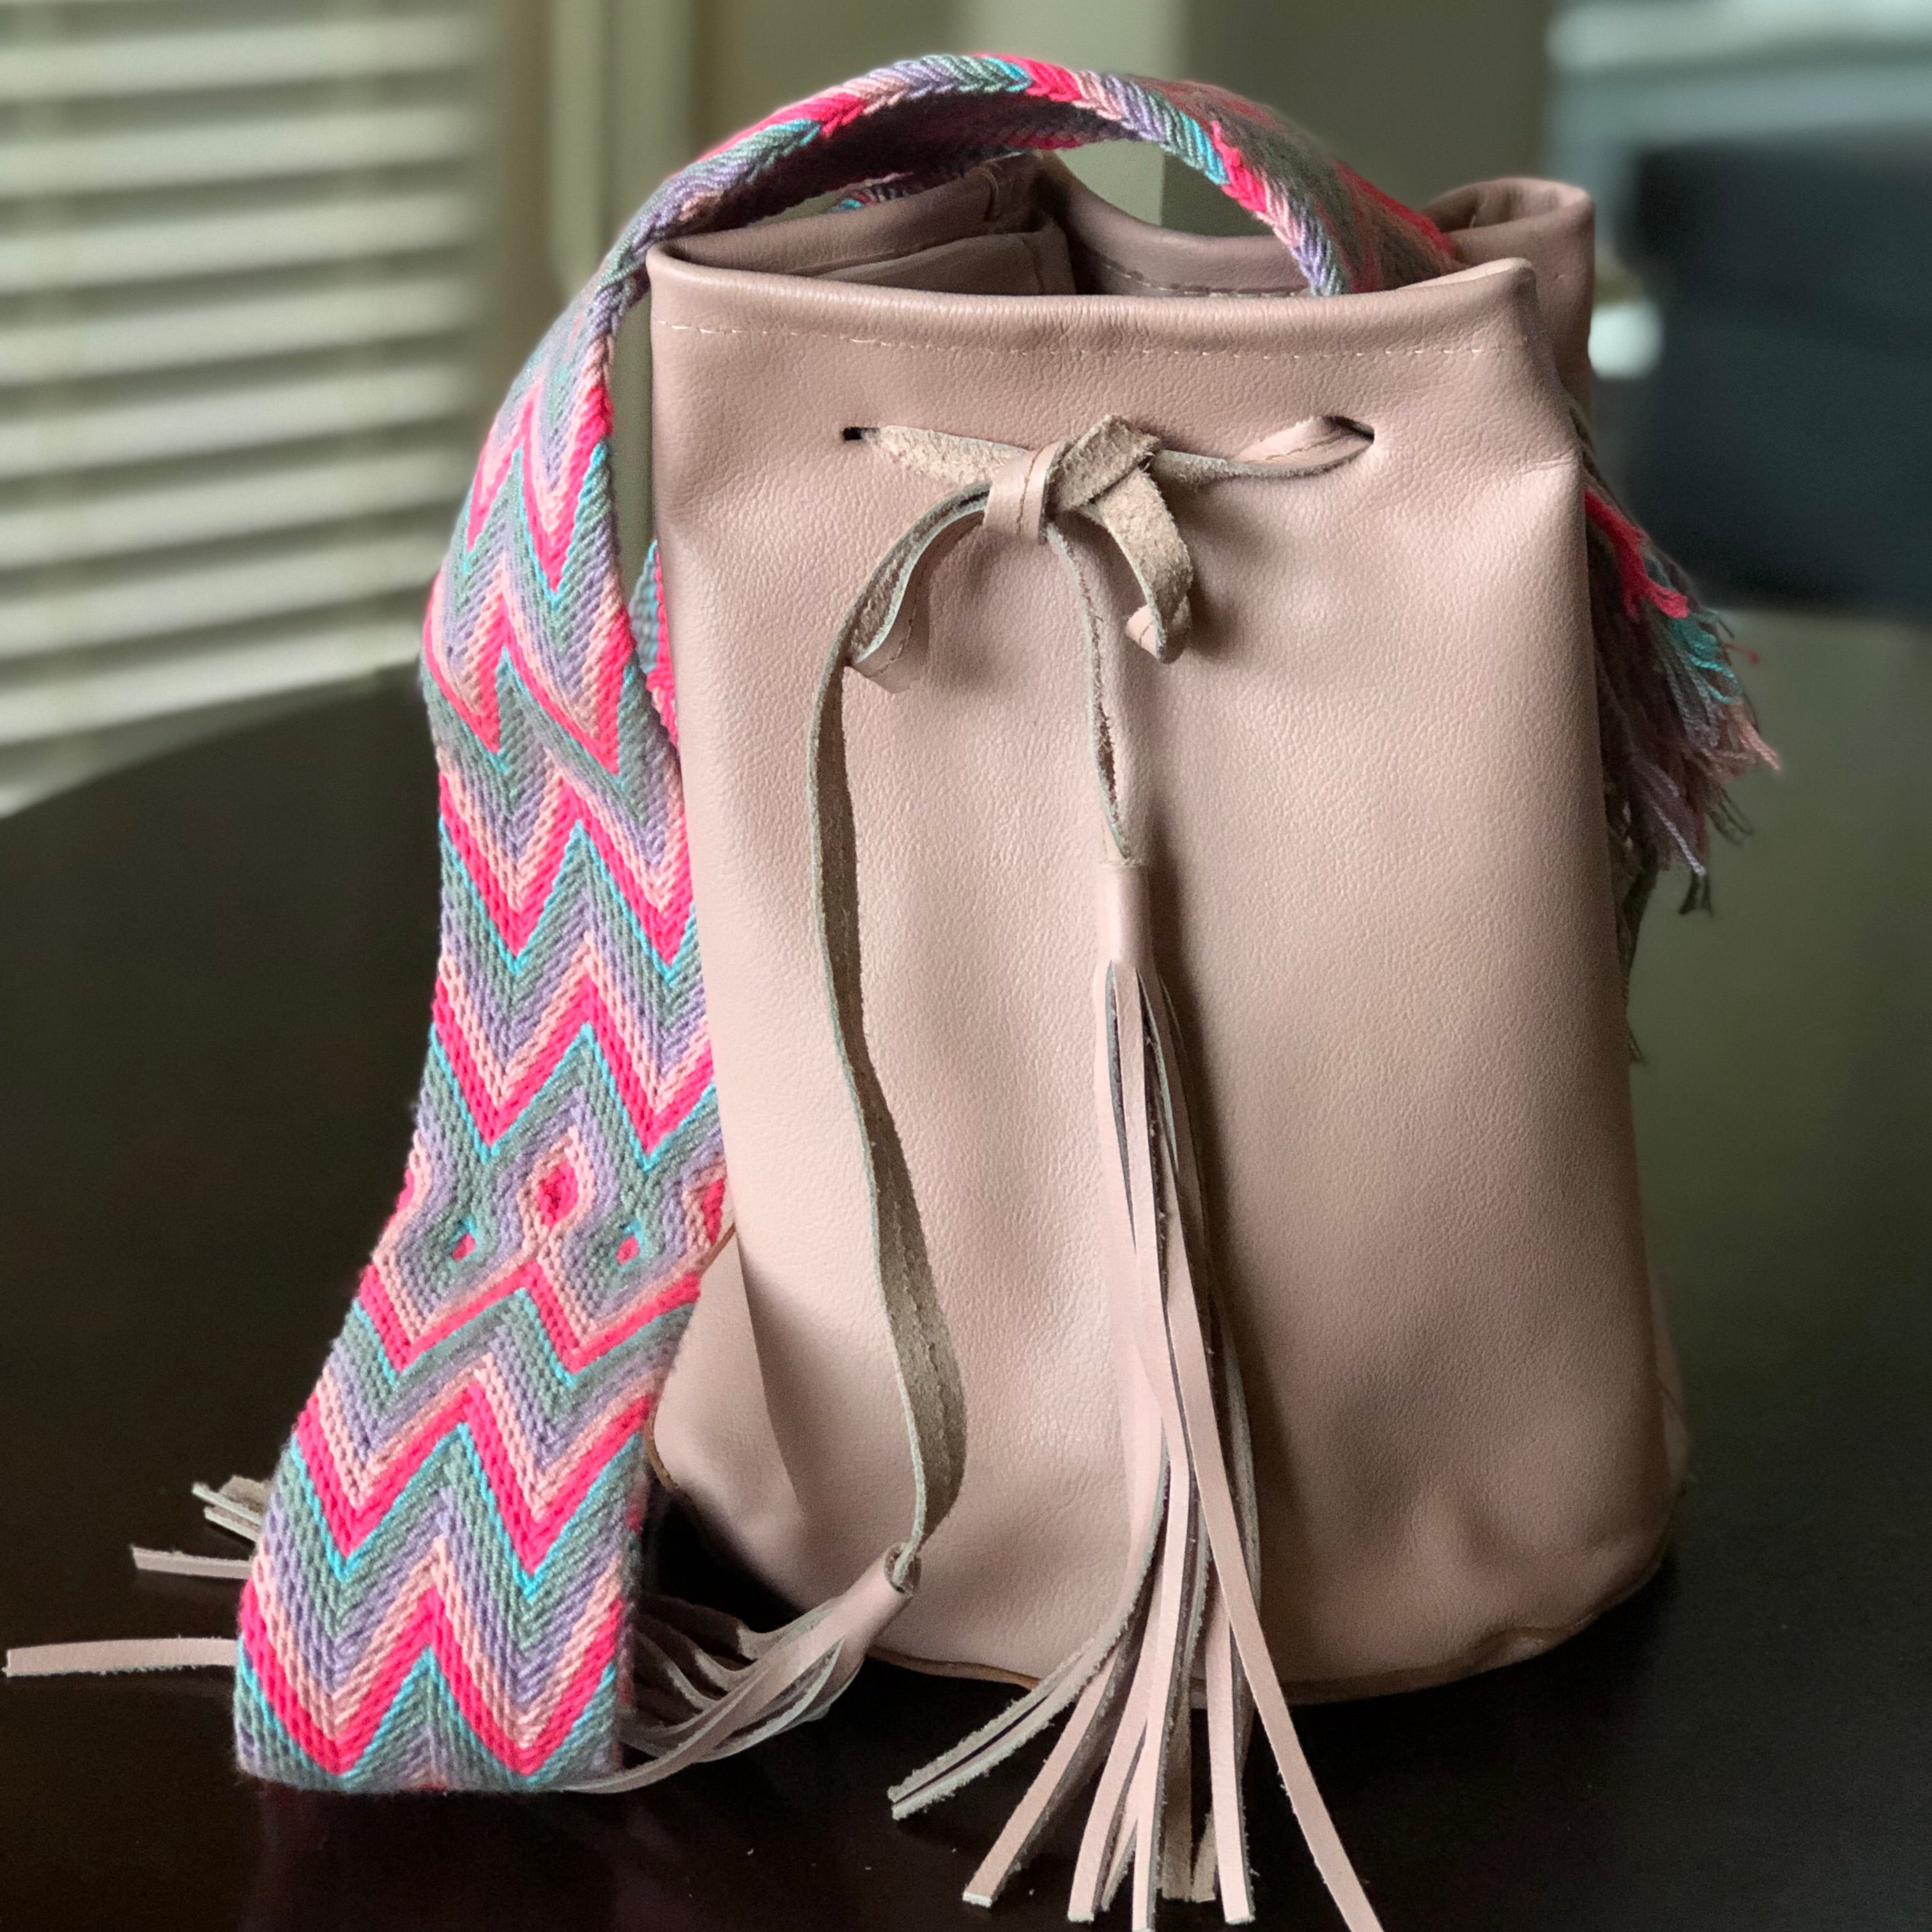 Colorful Leather Bags- Crossbody Bucket Bags - Boho Style